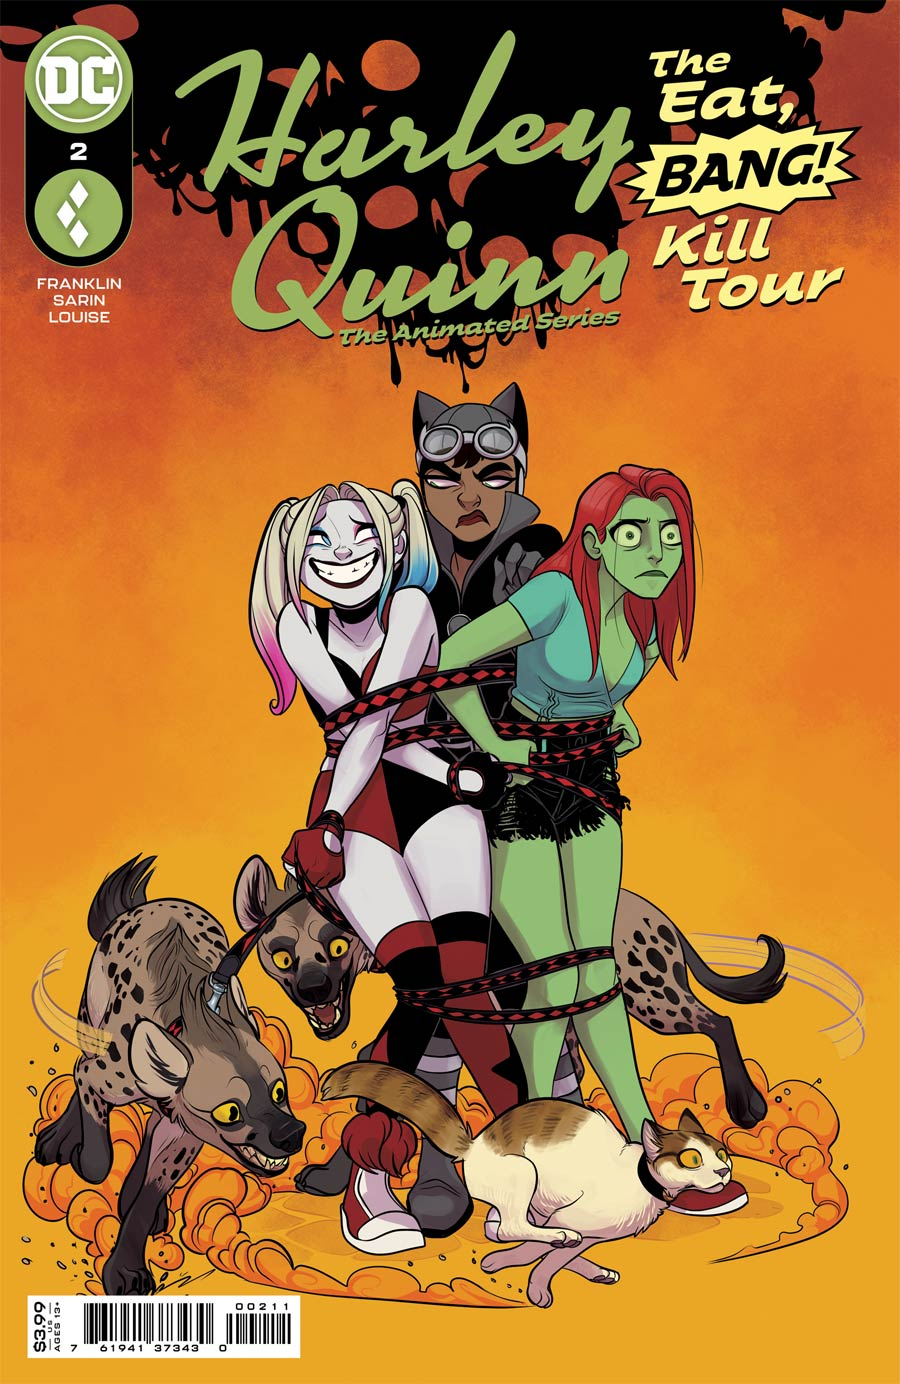 Harley Quinn The Animated Series The Eat Bang Kill Tour #2 Cover A Regular Max Sarin Cover